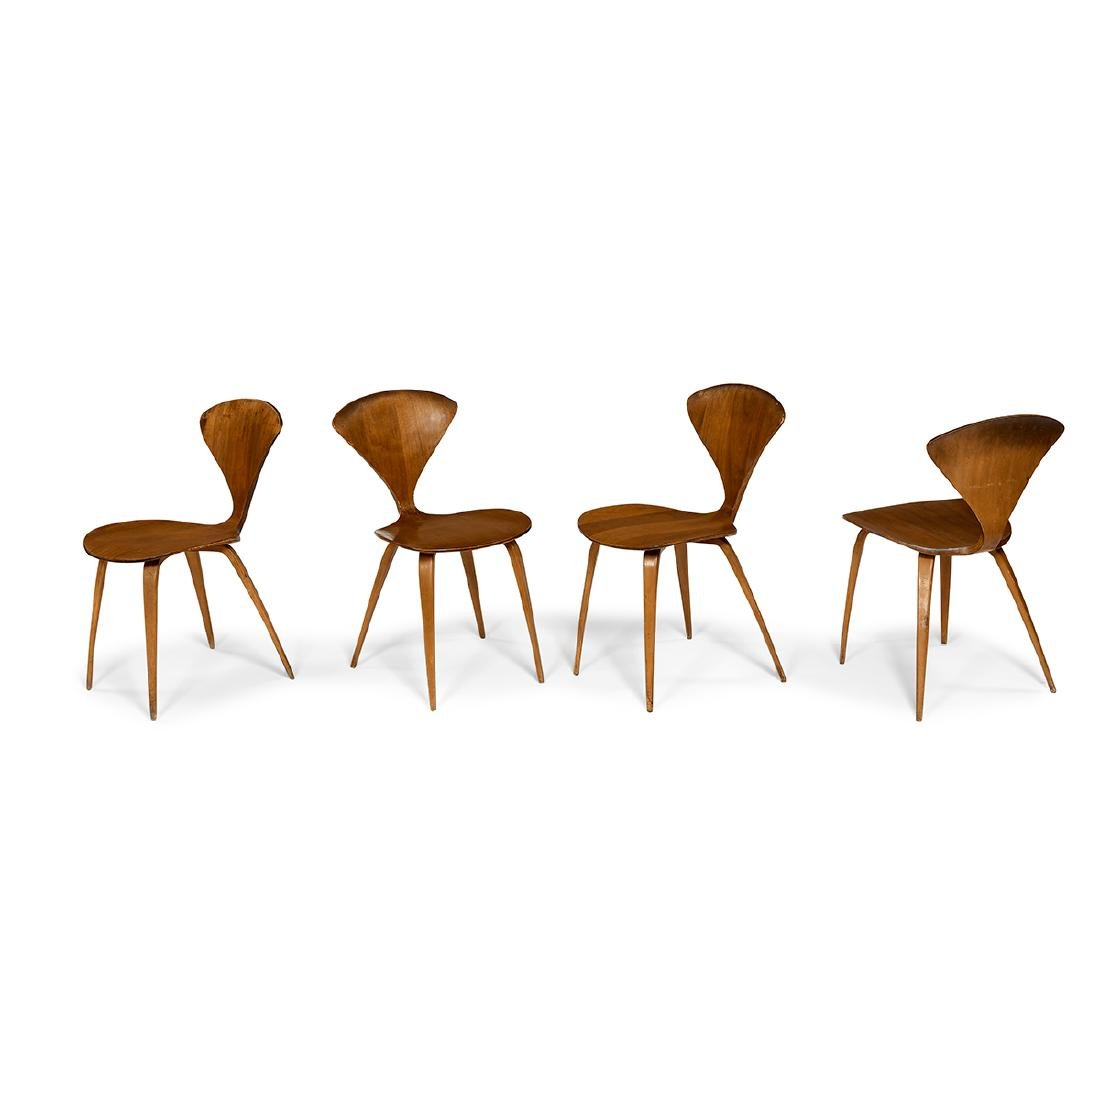 Norman Cherner for Plycraft dining chairs, four